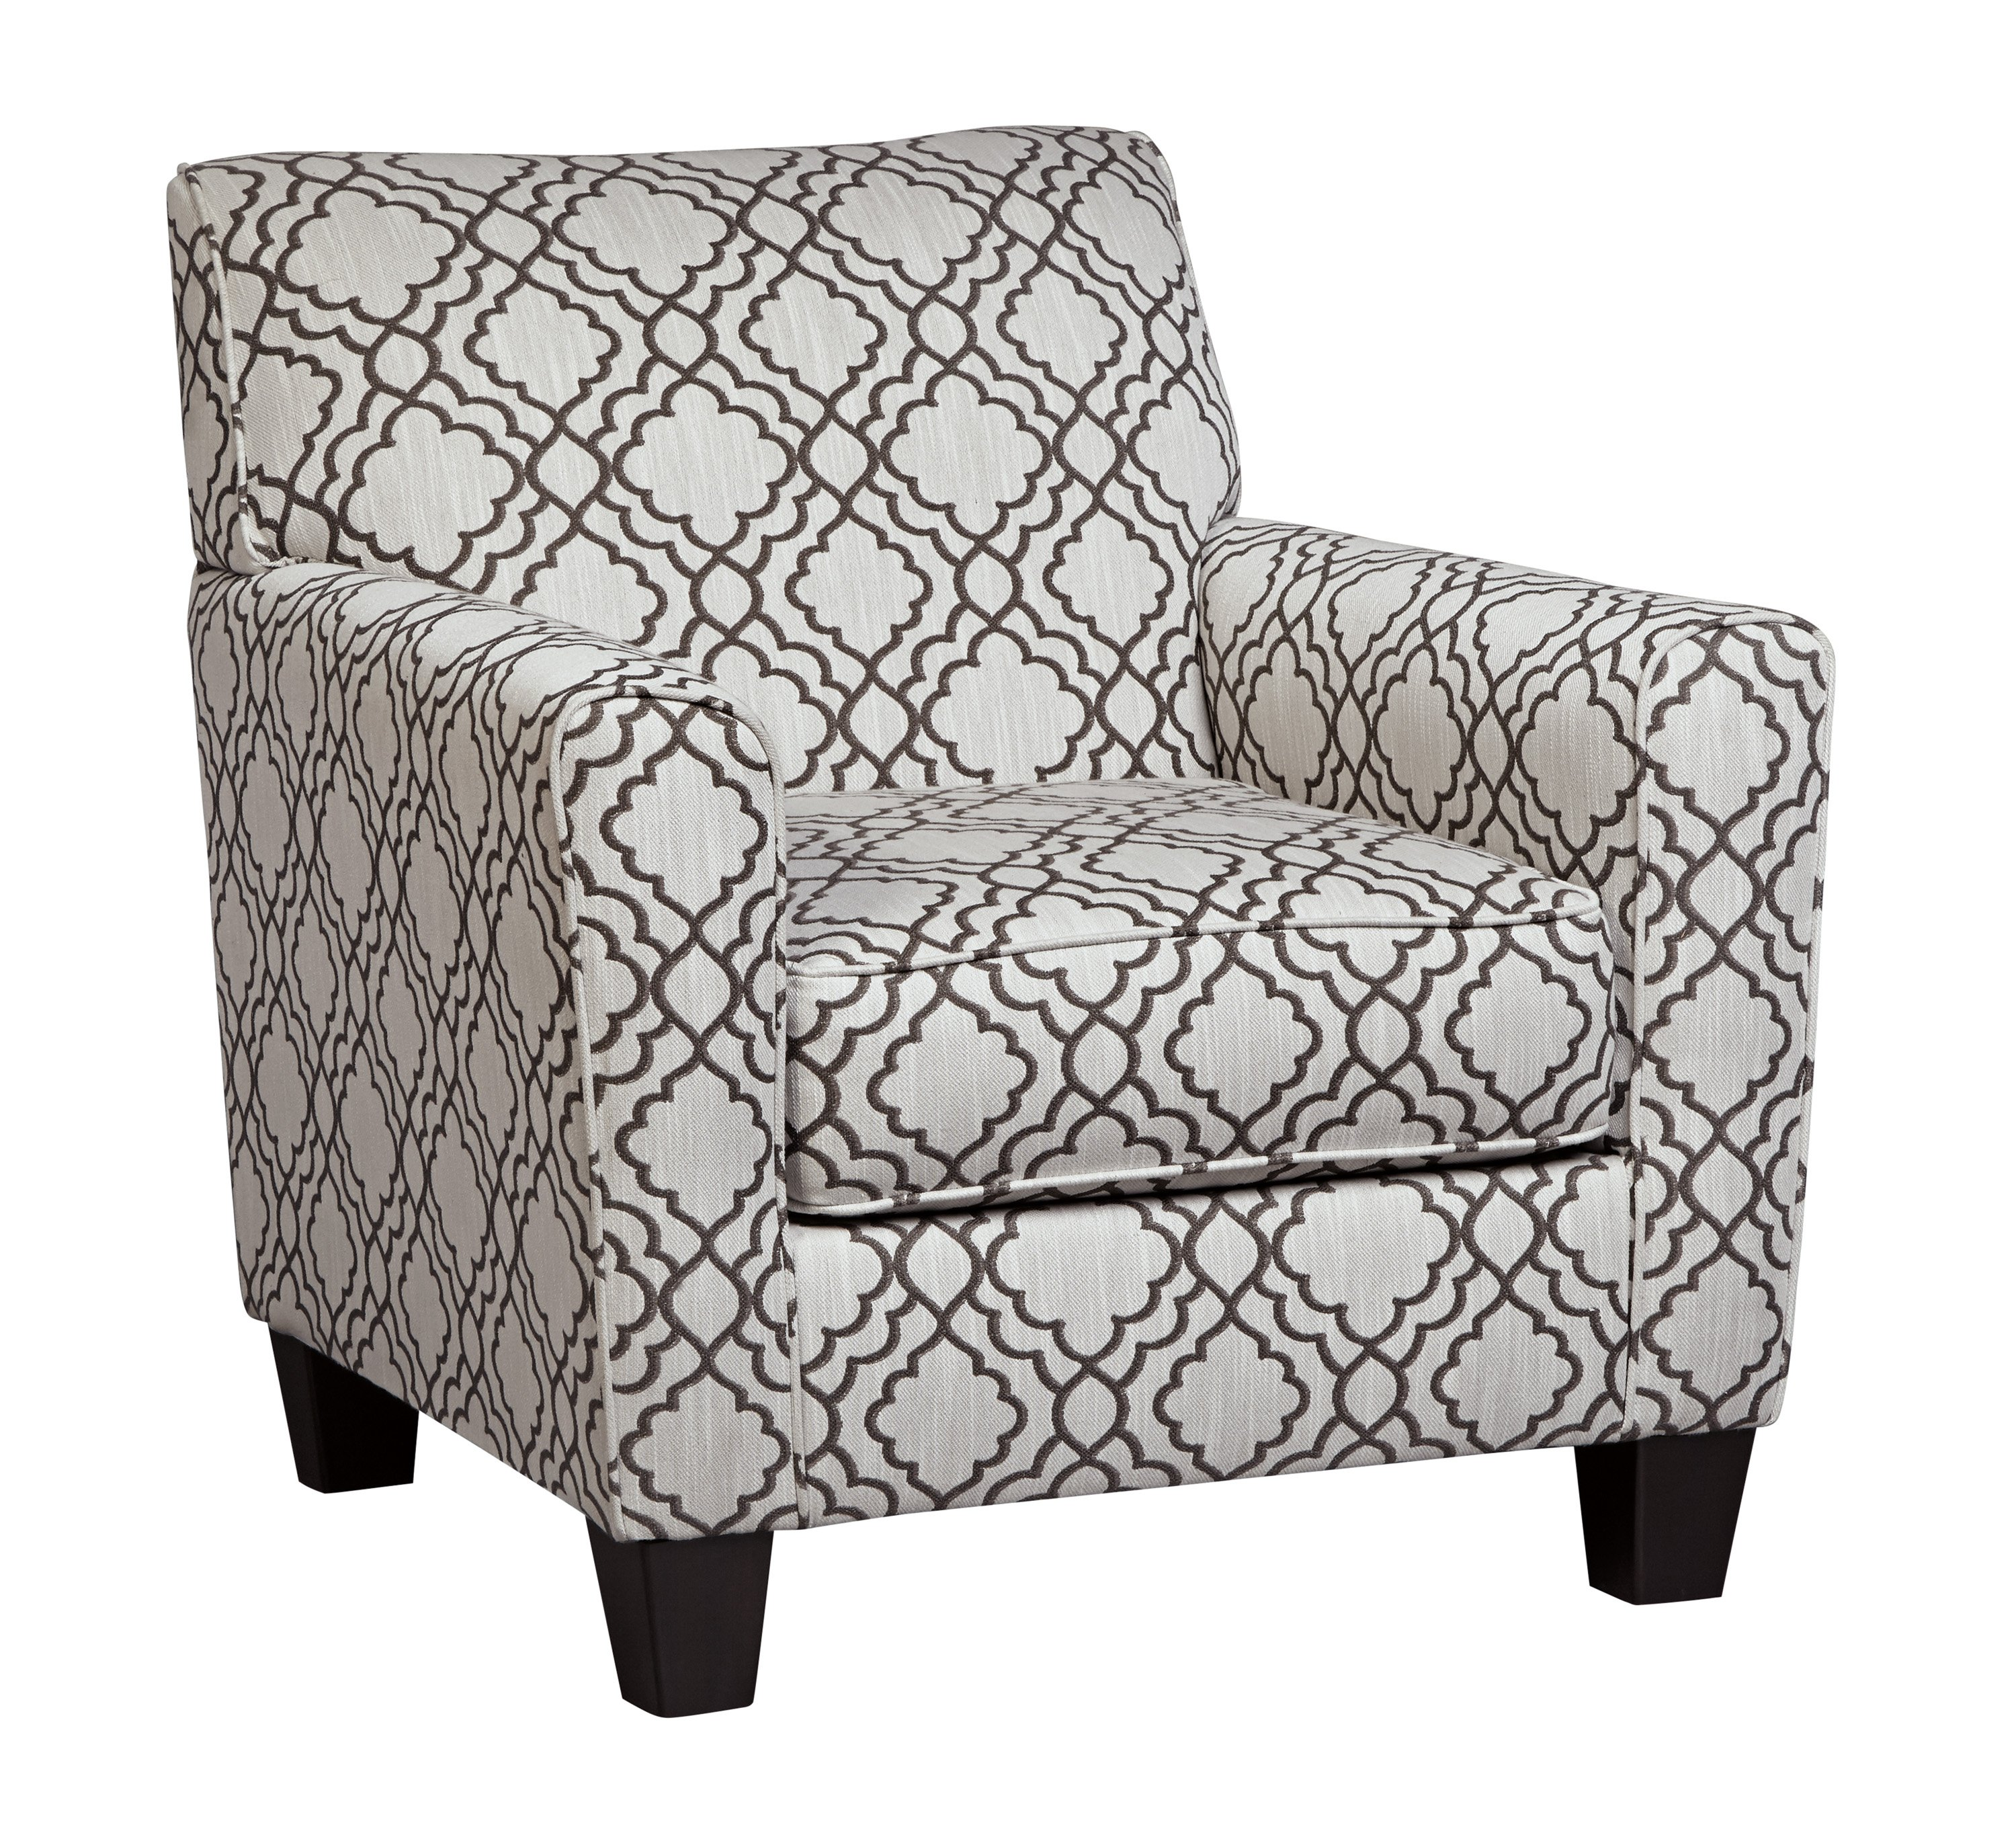 Farouh Pearl Traditional Accent Chair 1370121 Ashley Furniture